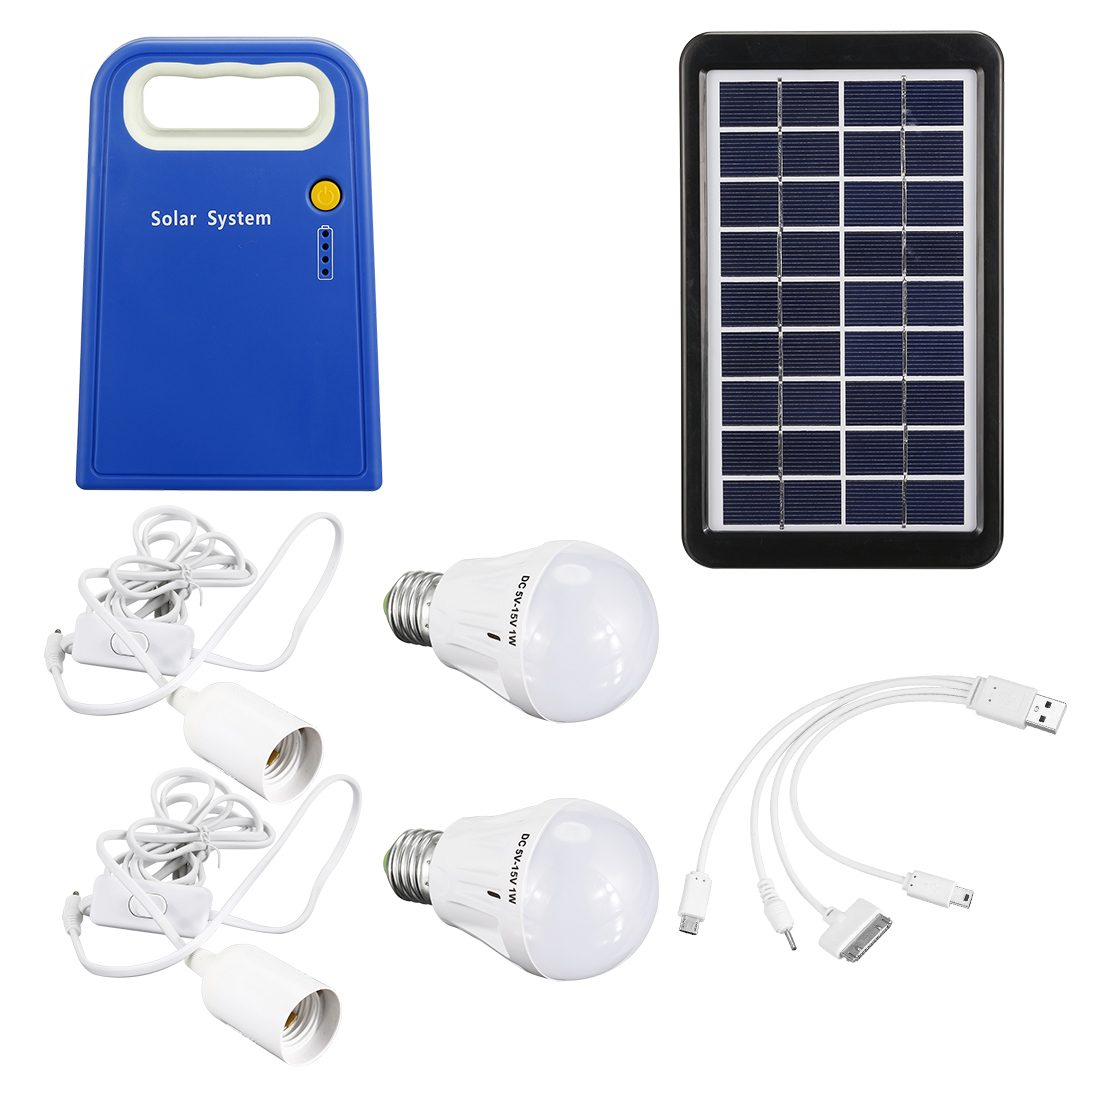 3 Watt Solar Generator System Power Inverter Portable Kit 500mAh Rechargeable